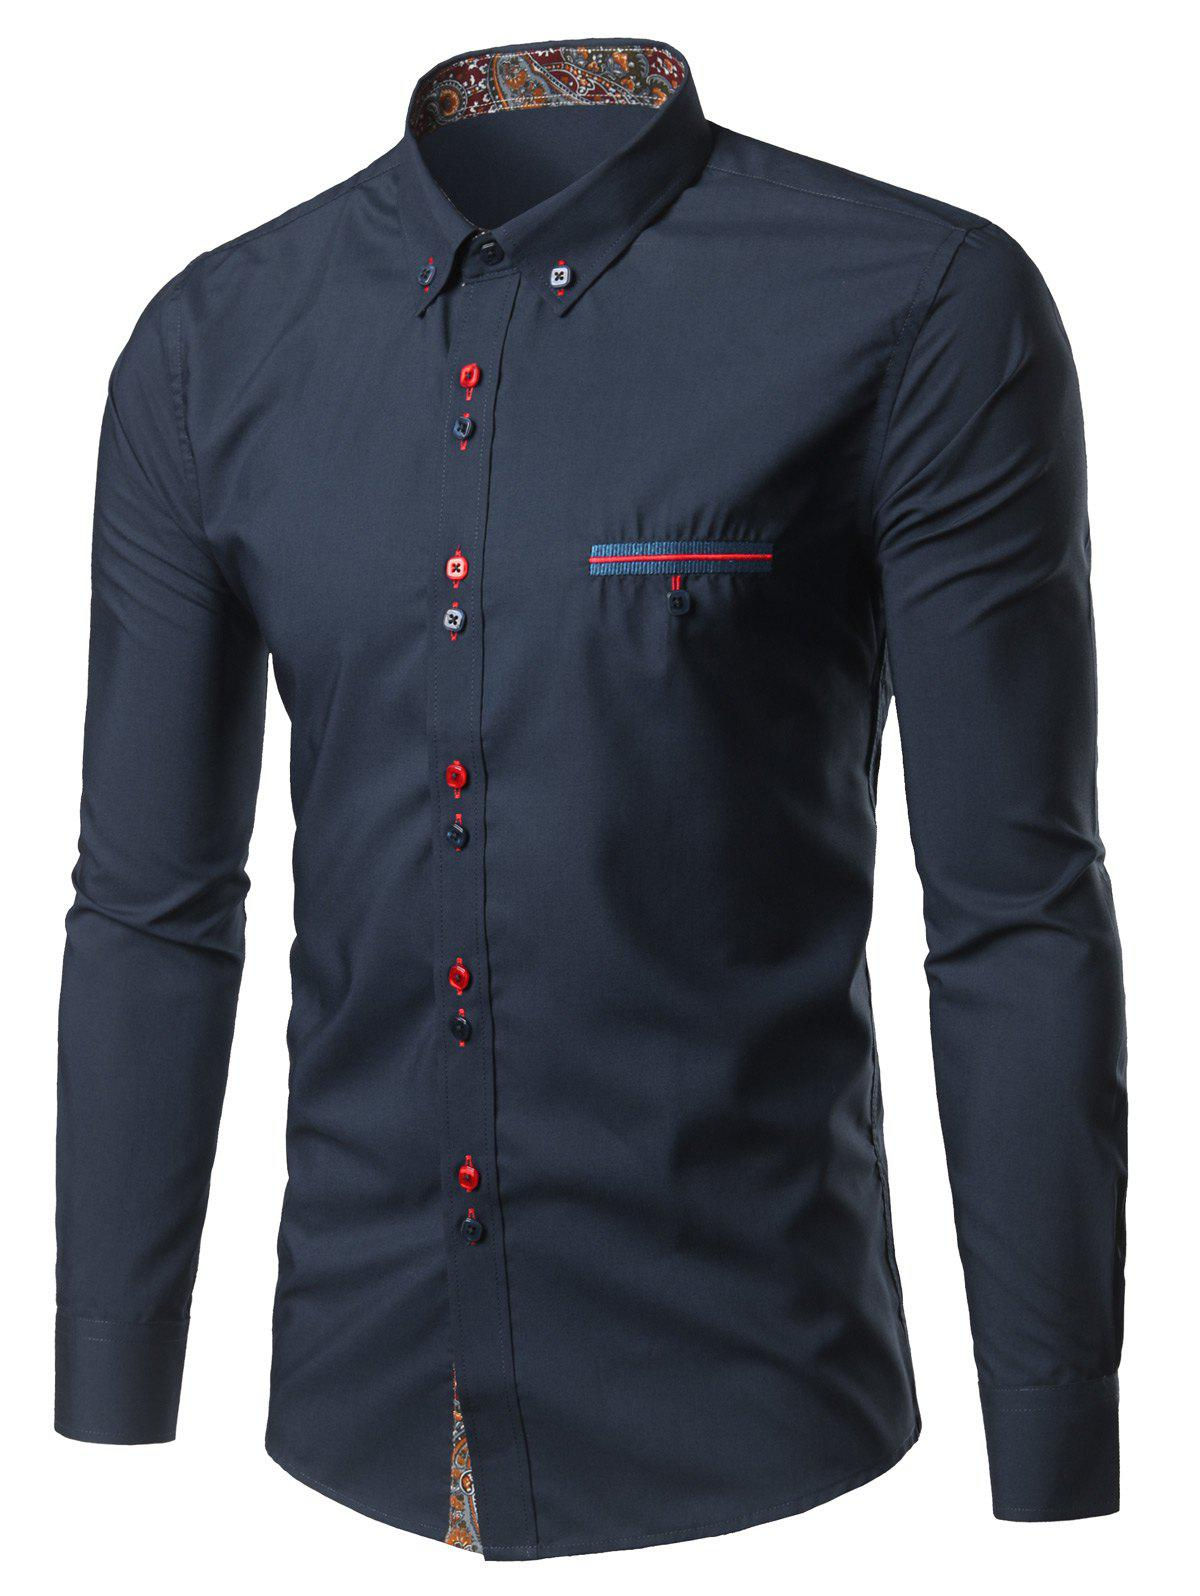 Find double button shirt at ShopStyle. Shop the latest collection of double button shirt from the most popular stores - all in one place.